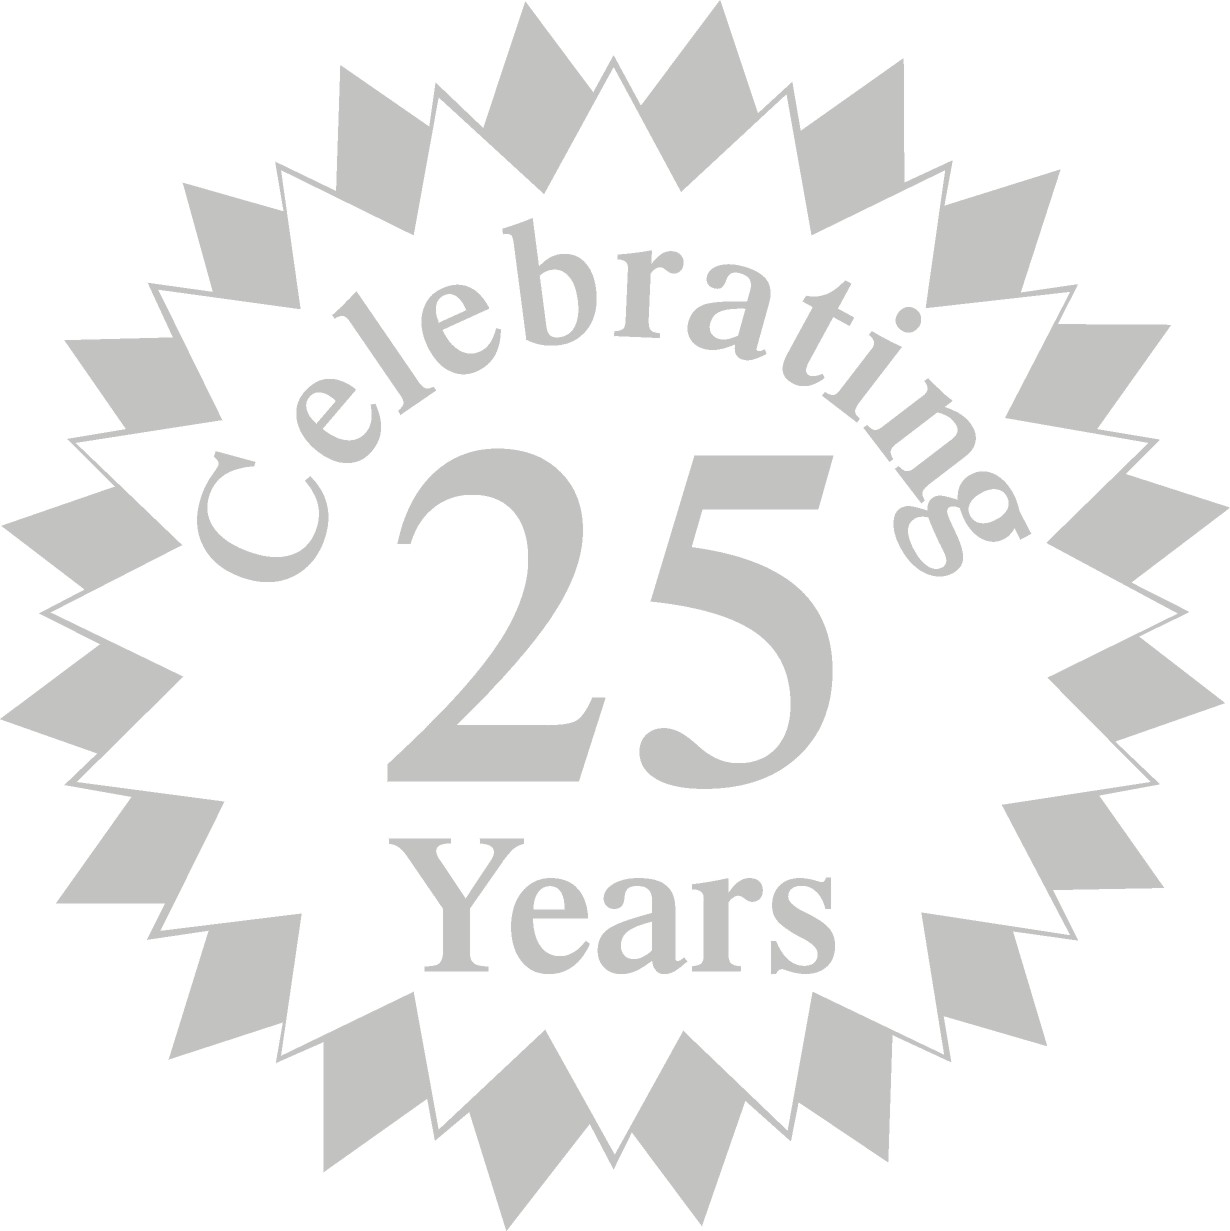 25 year anniversary clipart clipart suggest 25th wedding anniversary clipart free 25th Anniversary Graphics